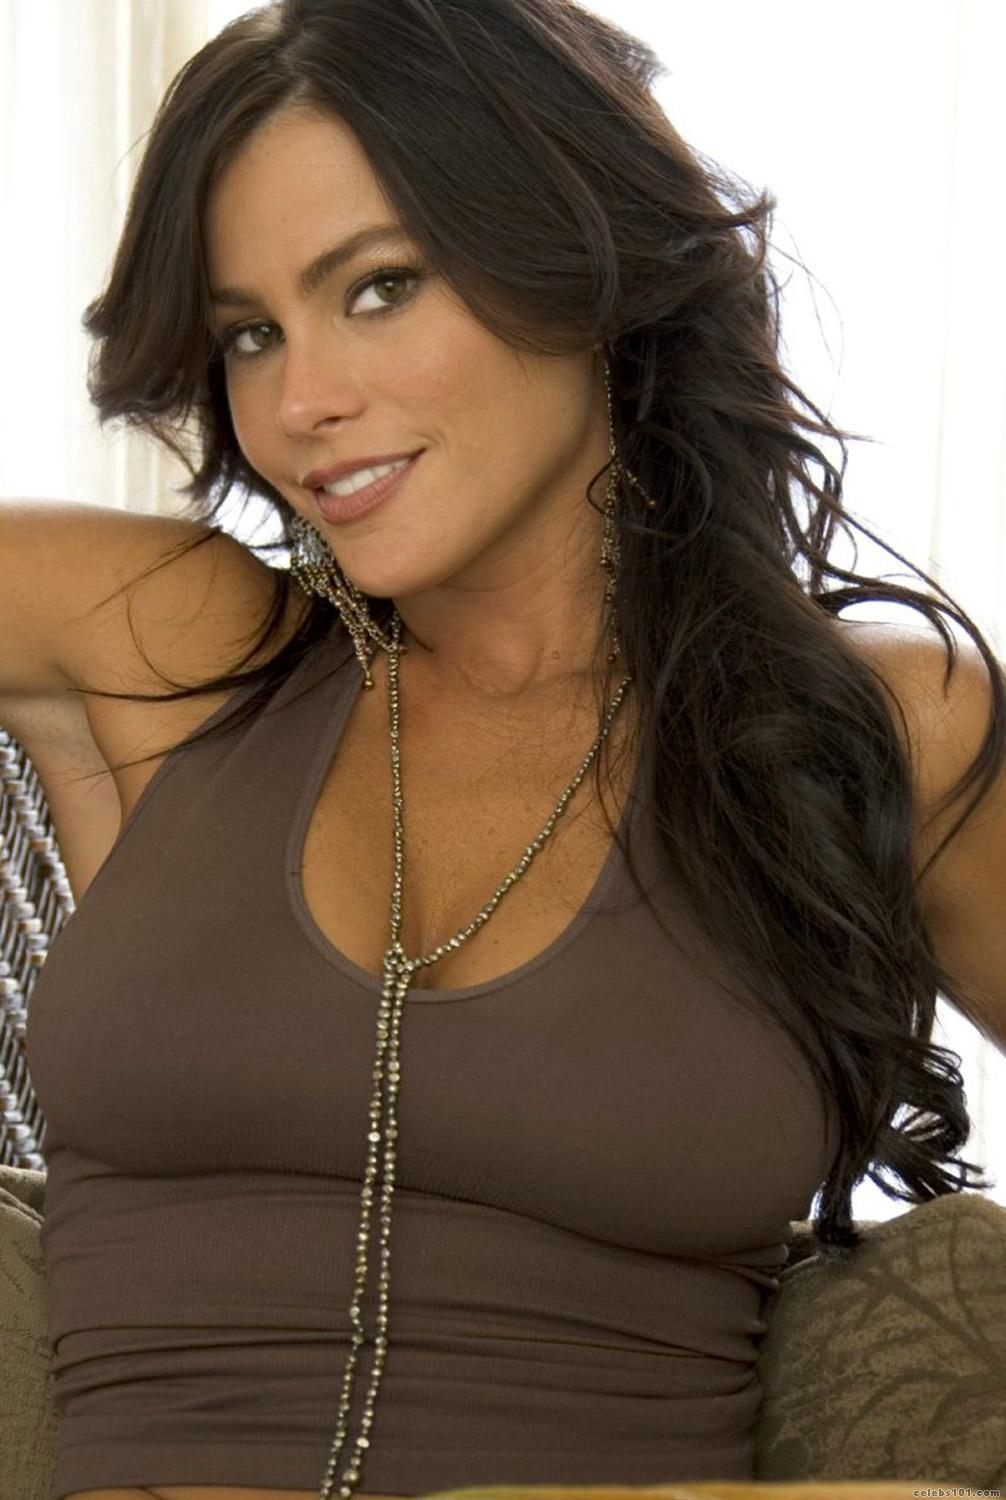 Angie Harmon Xnxx if you could fuck any celeb, who would it be??   page 15